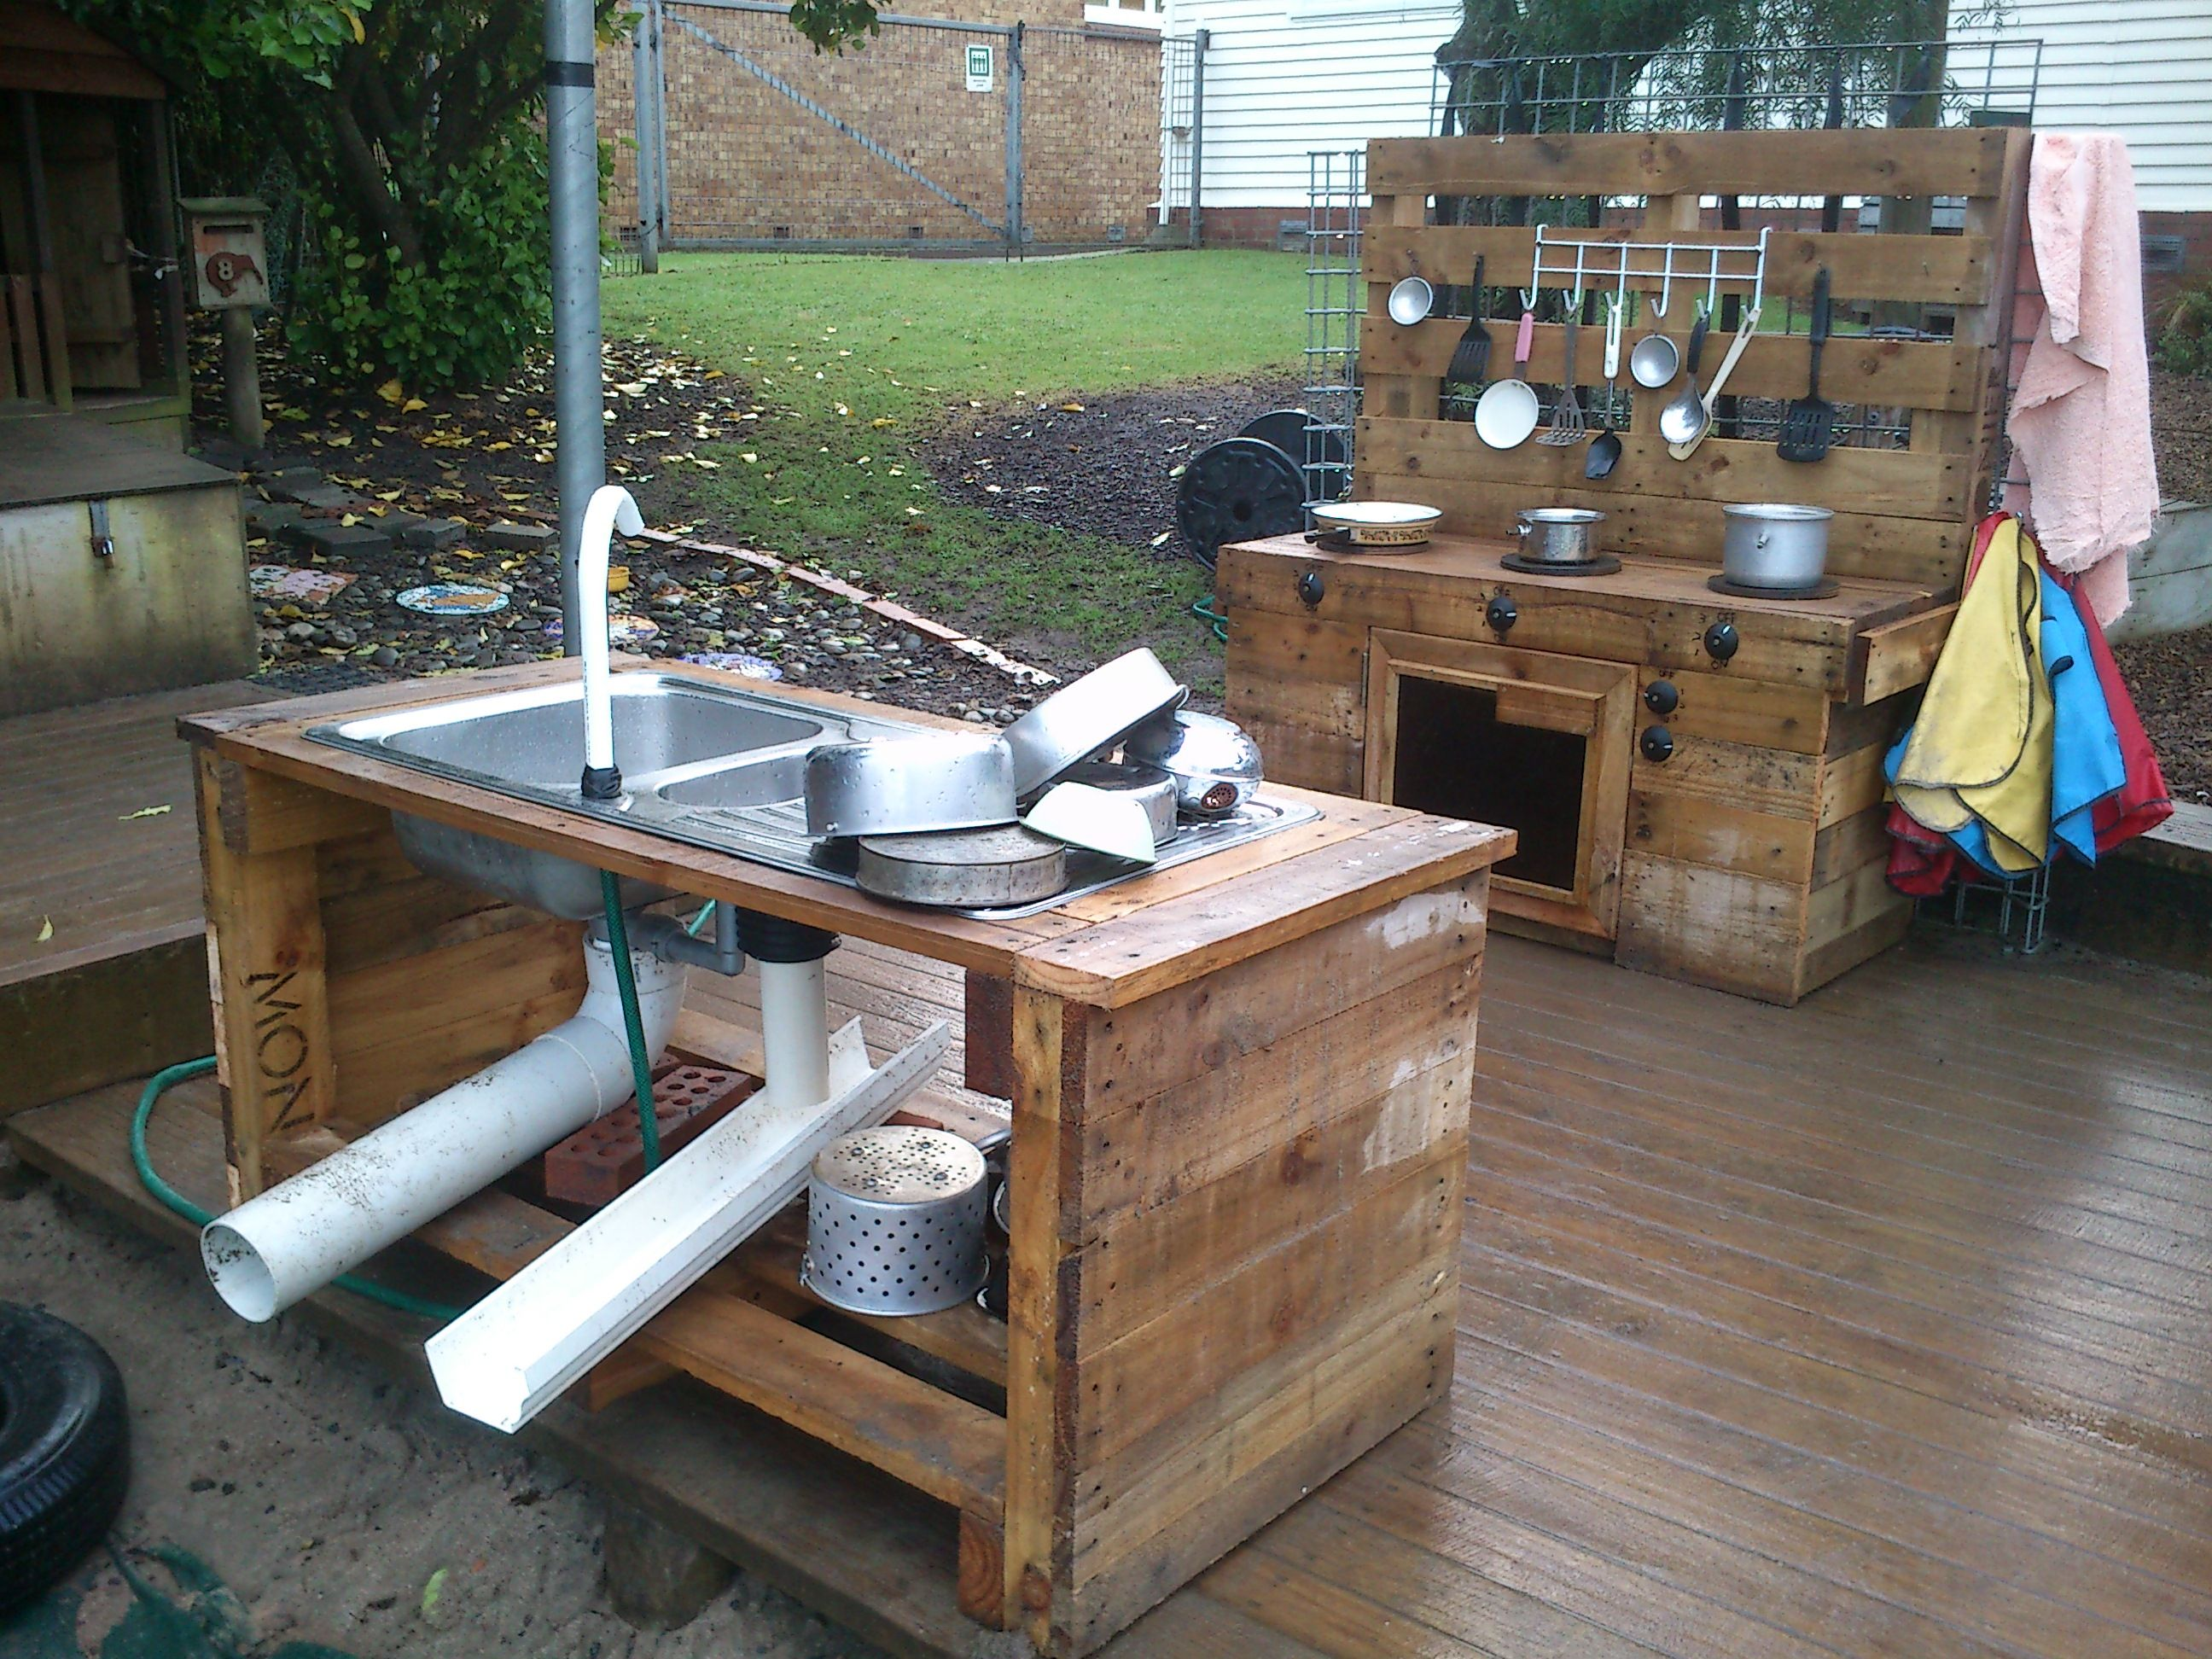 Full pallet kitchen near our sandpit my projects for Building an outdoor kitchen